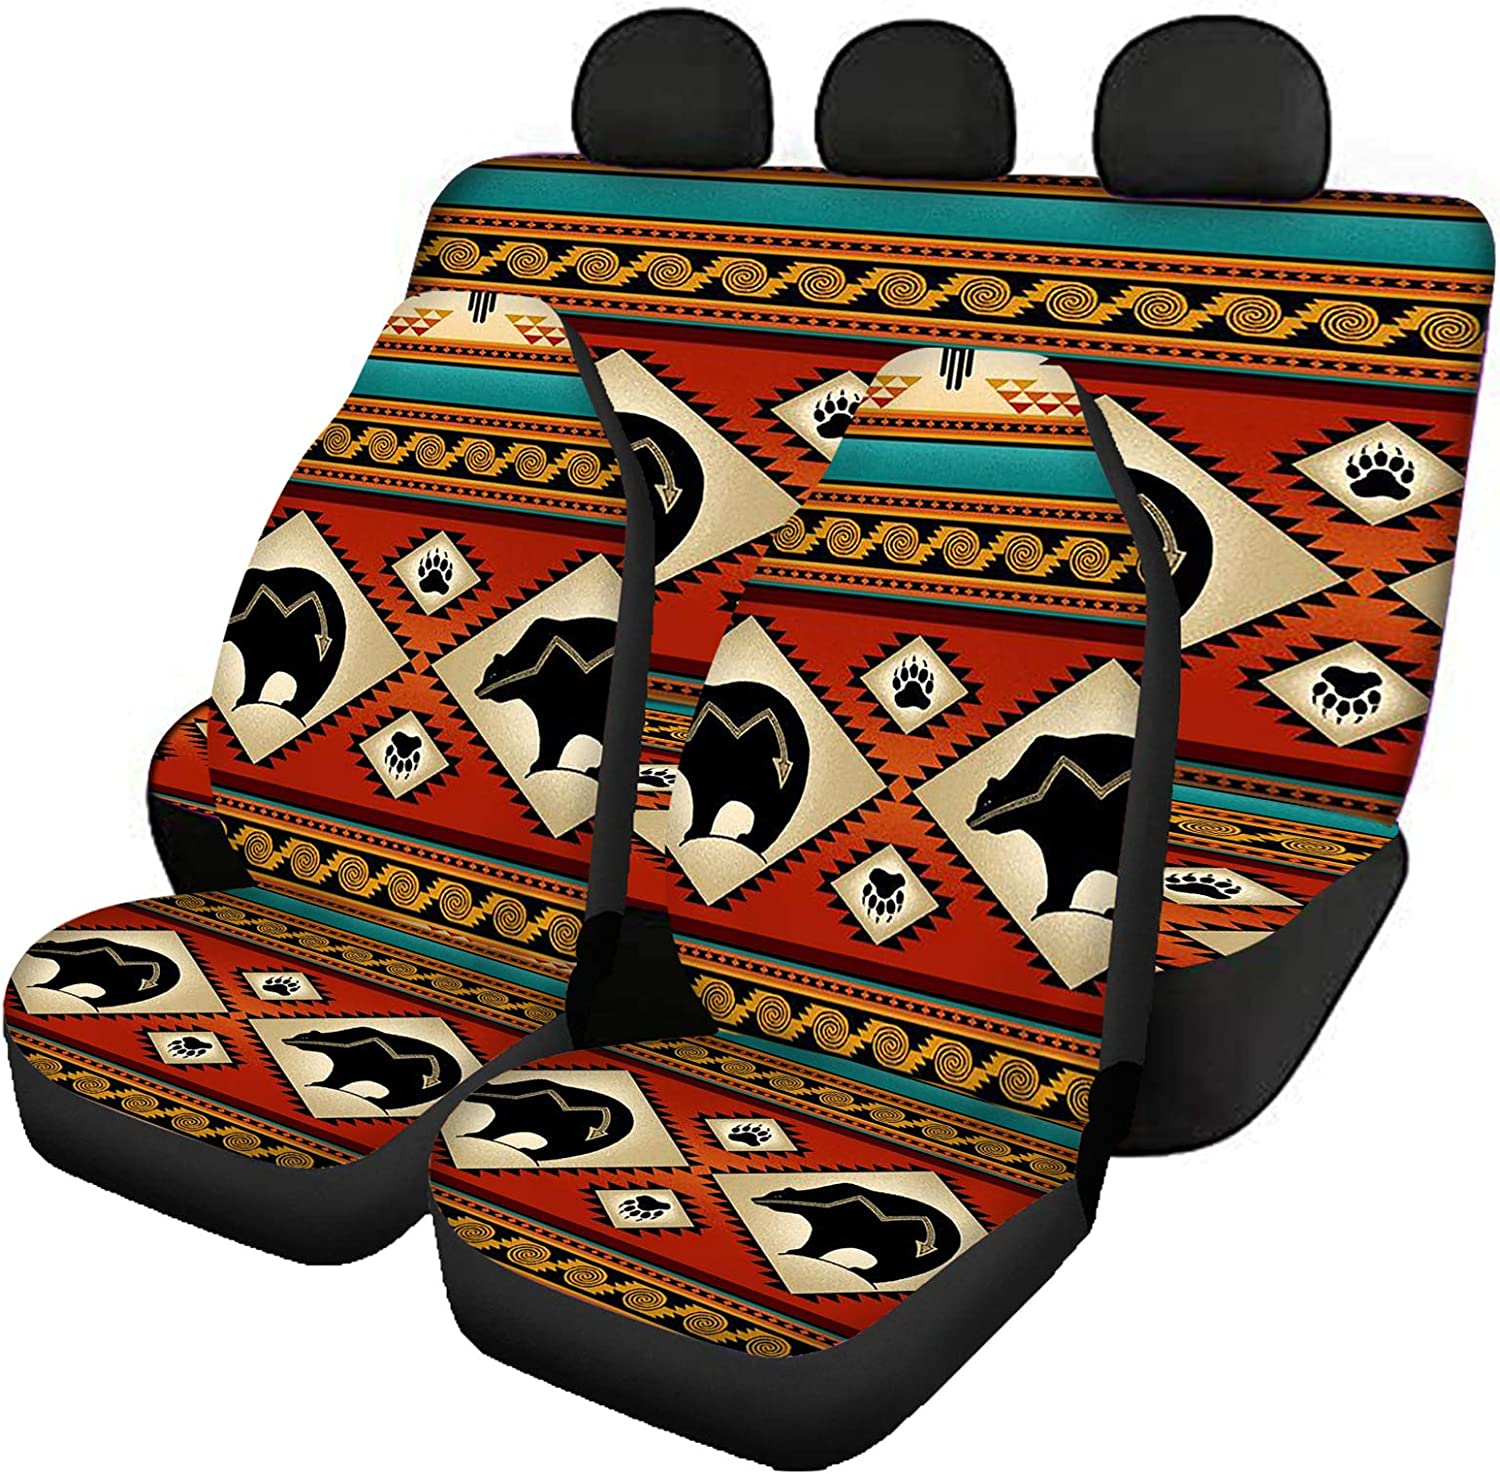 Buybai 4 PCs Manufacturer regenerated product Aztec Paws Print Auto Memphis Mall Seat Covers Cool for Cars Car